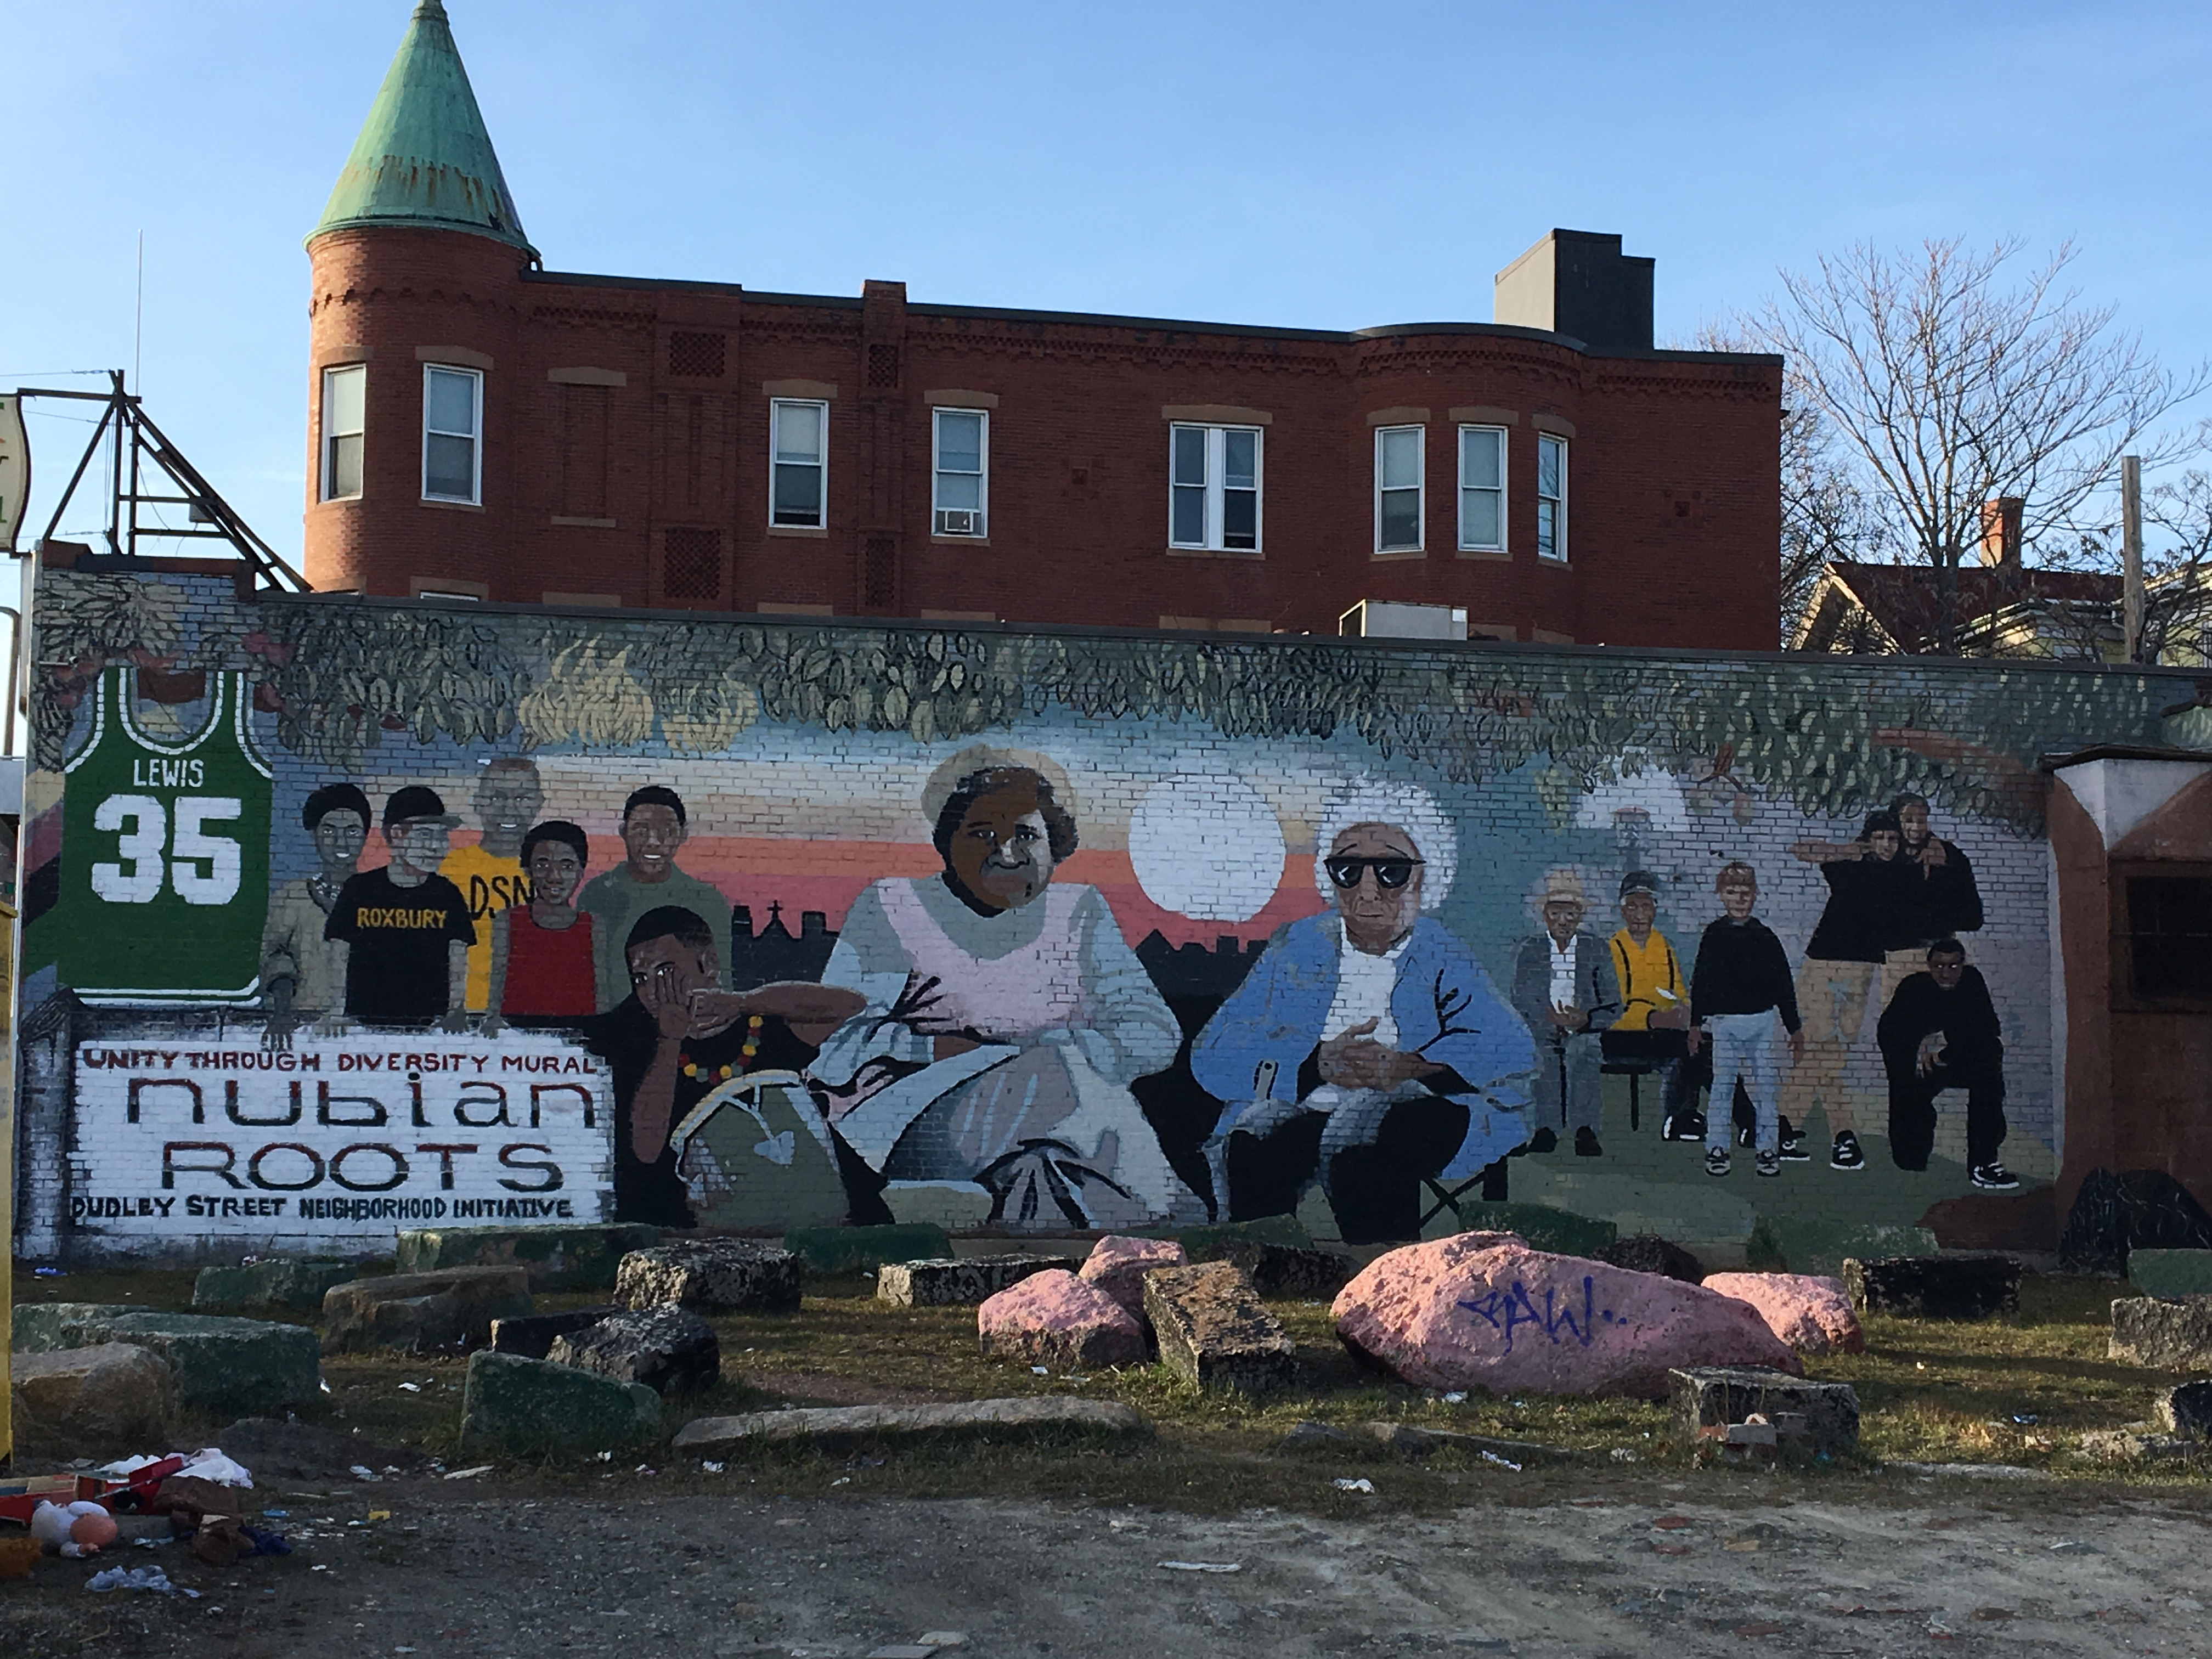 Community Land Trust- DUDLEY STREET NEIGHBORHOOD INITIATIVE: DEVELOPMENT WITHOUT DISPLACEMENT